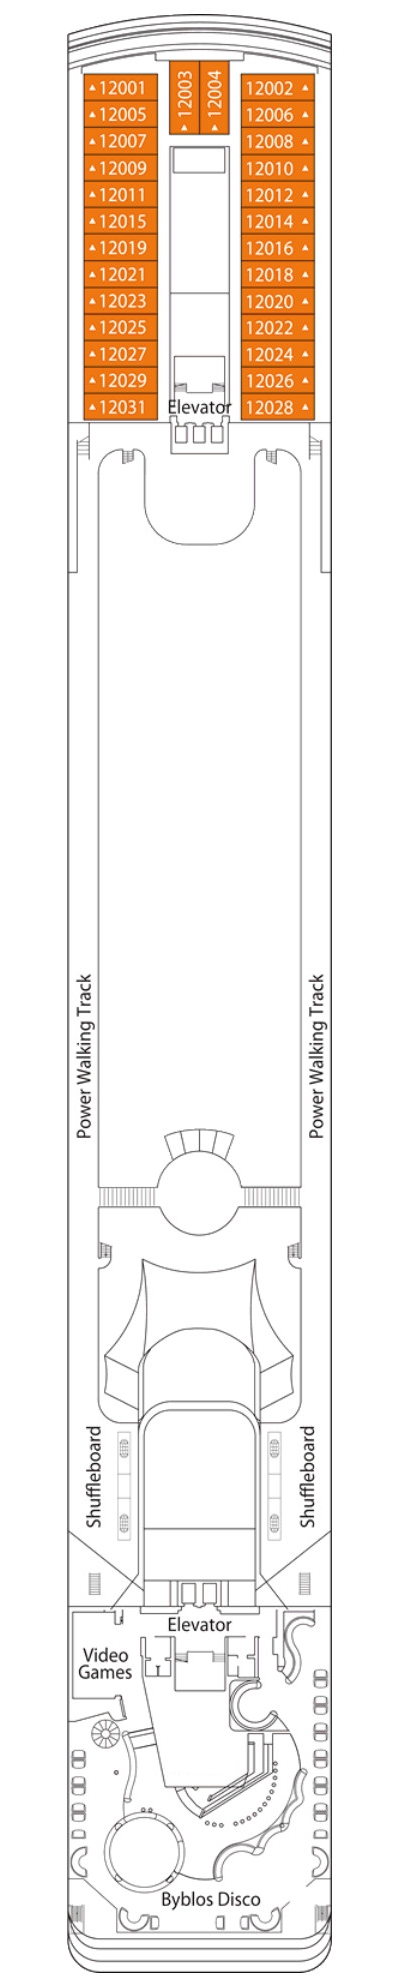 MSC Opera La Boheme Deck 12 layout